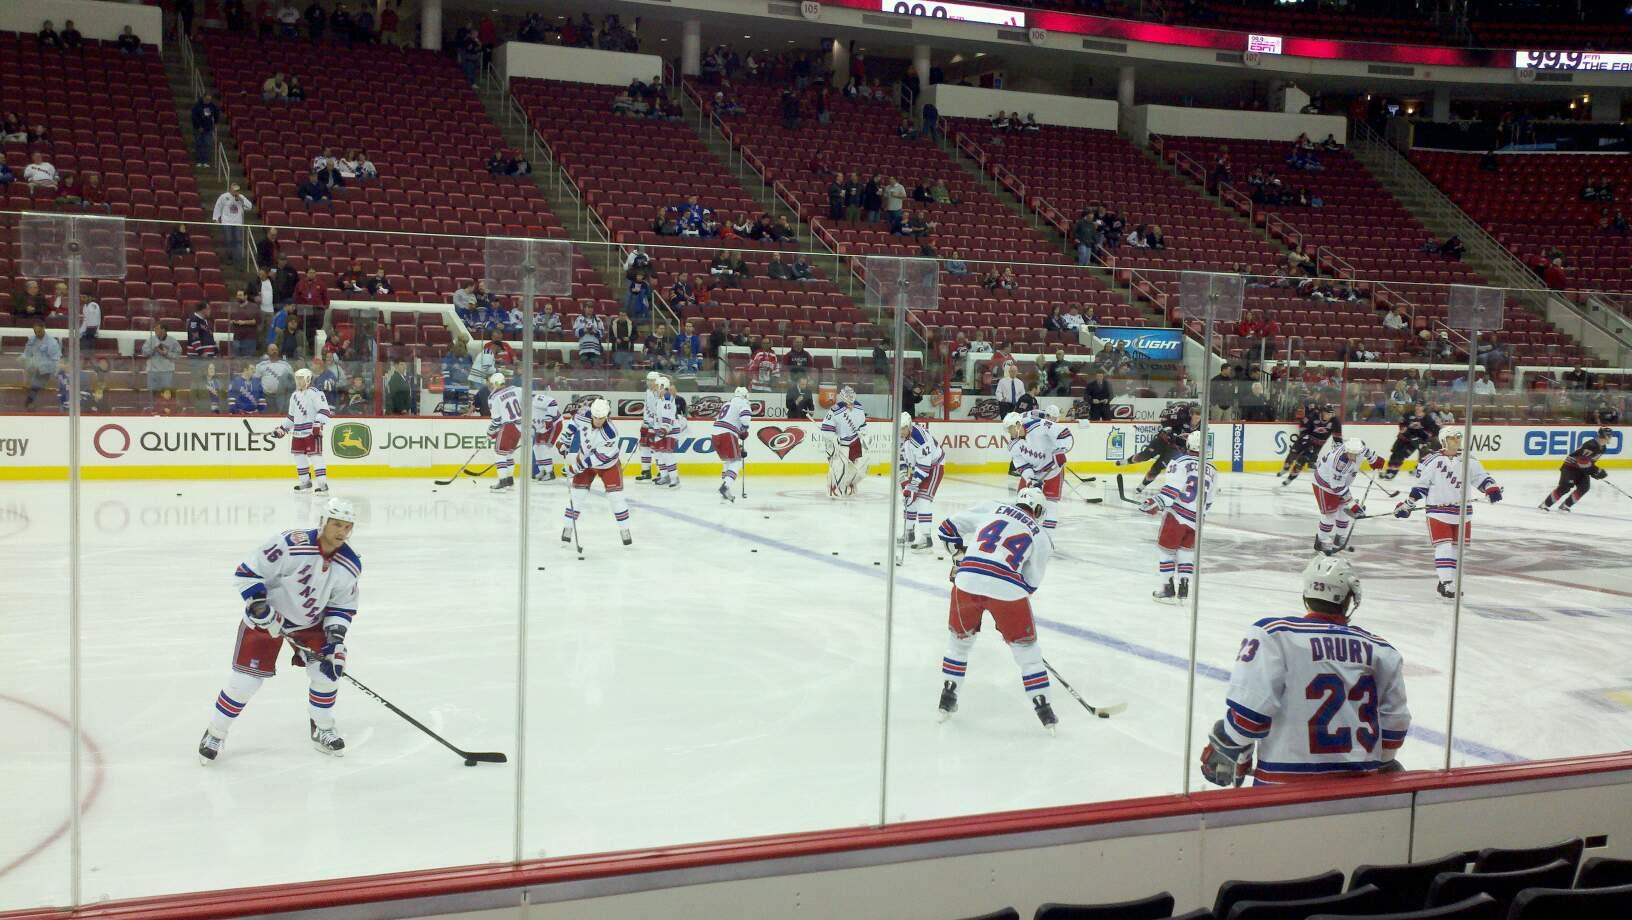 PNC Arena Section 121 Row E Seat 10